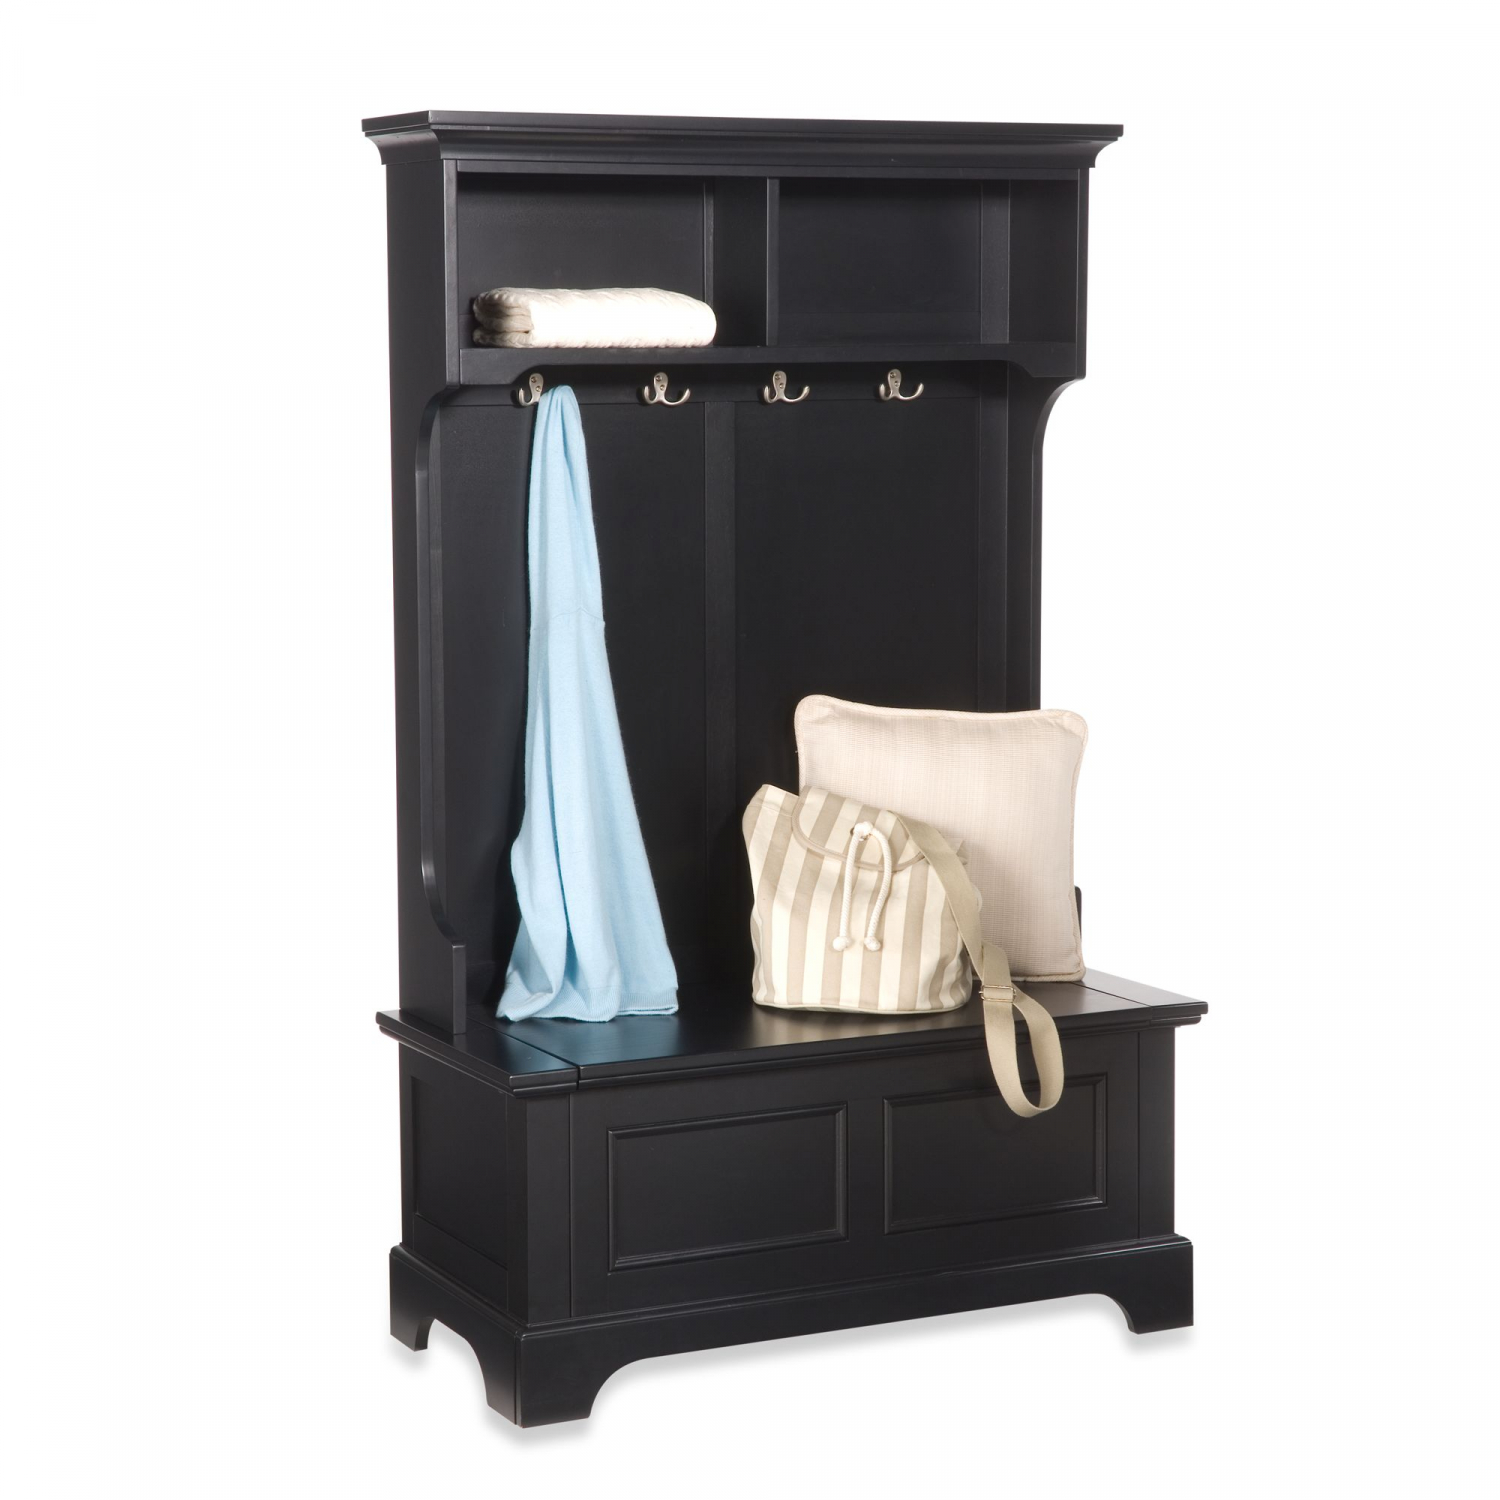 Hall Tree Kit Front Entryway Bench With Coat Rack Shoe Storage Black Farmhouse Ebay